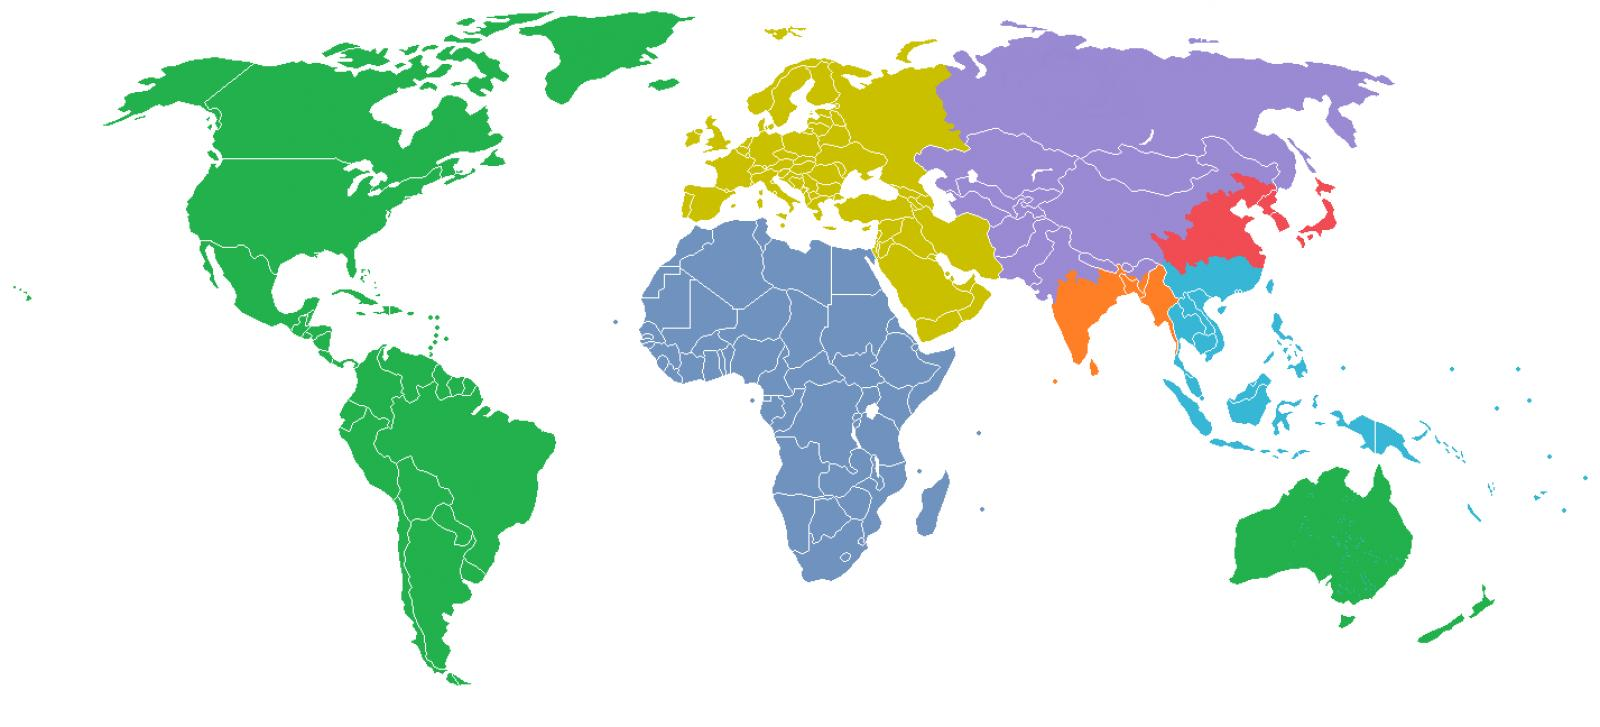 Map of the world divided into 7 regions one for each billion